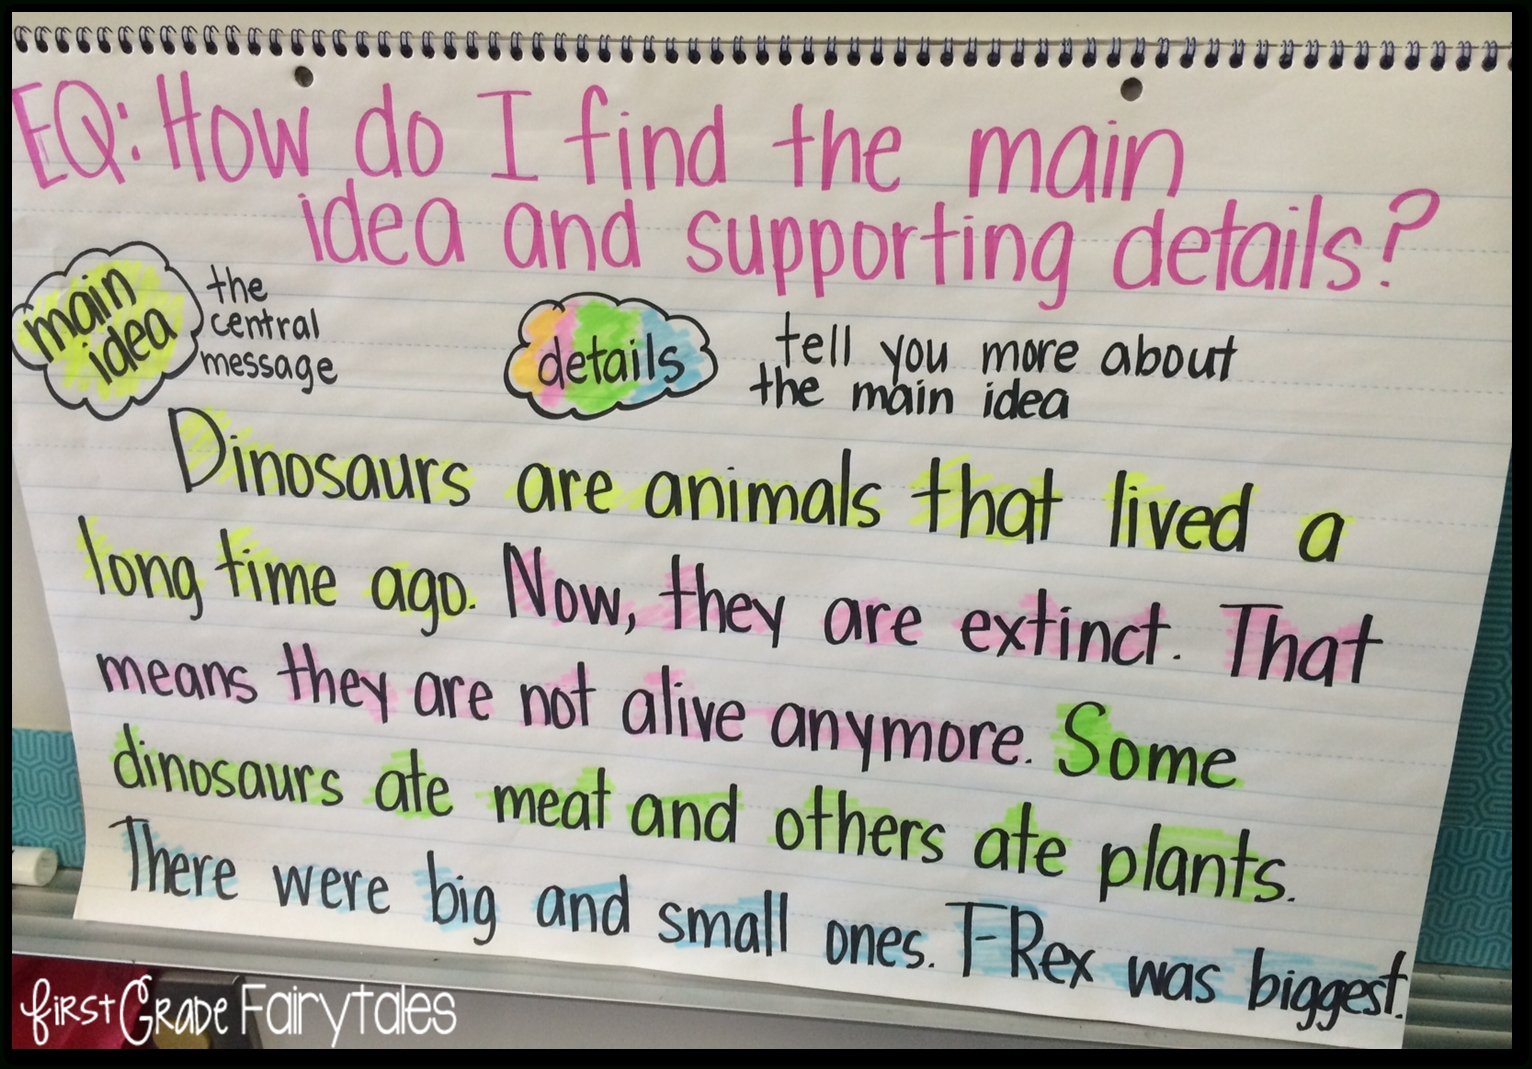 first grade fairytales: what's the big idea? main idea in